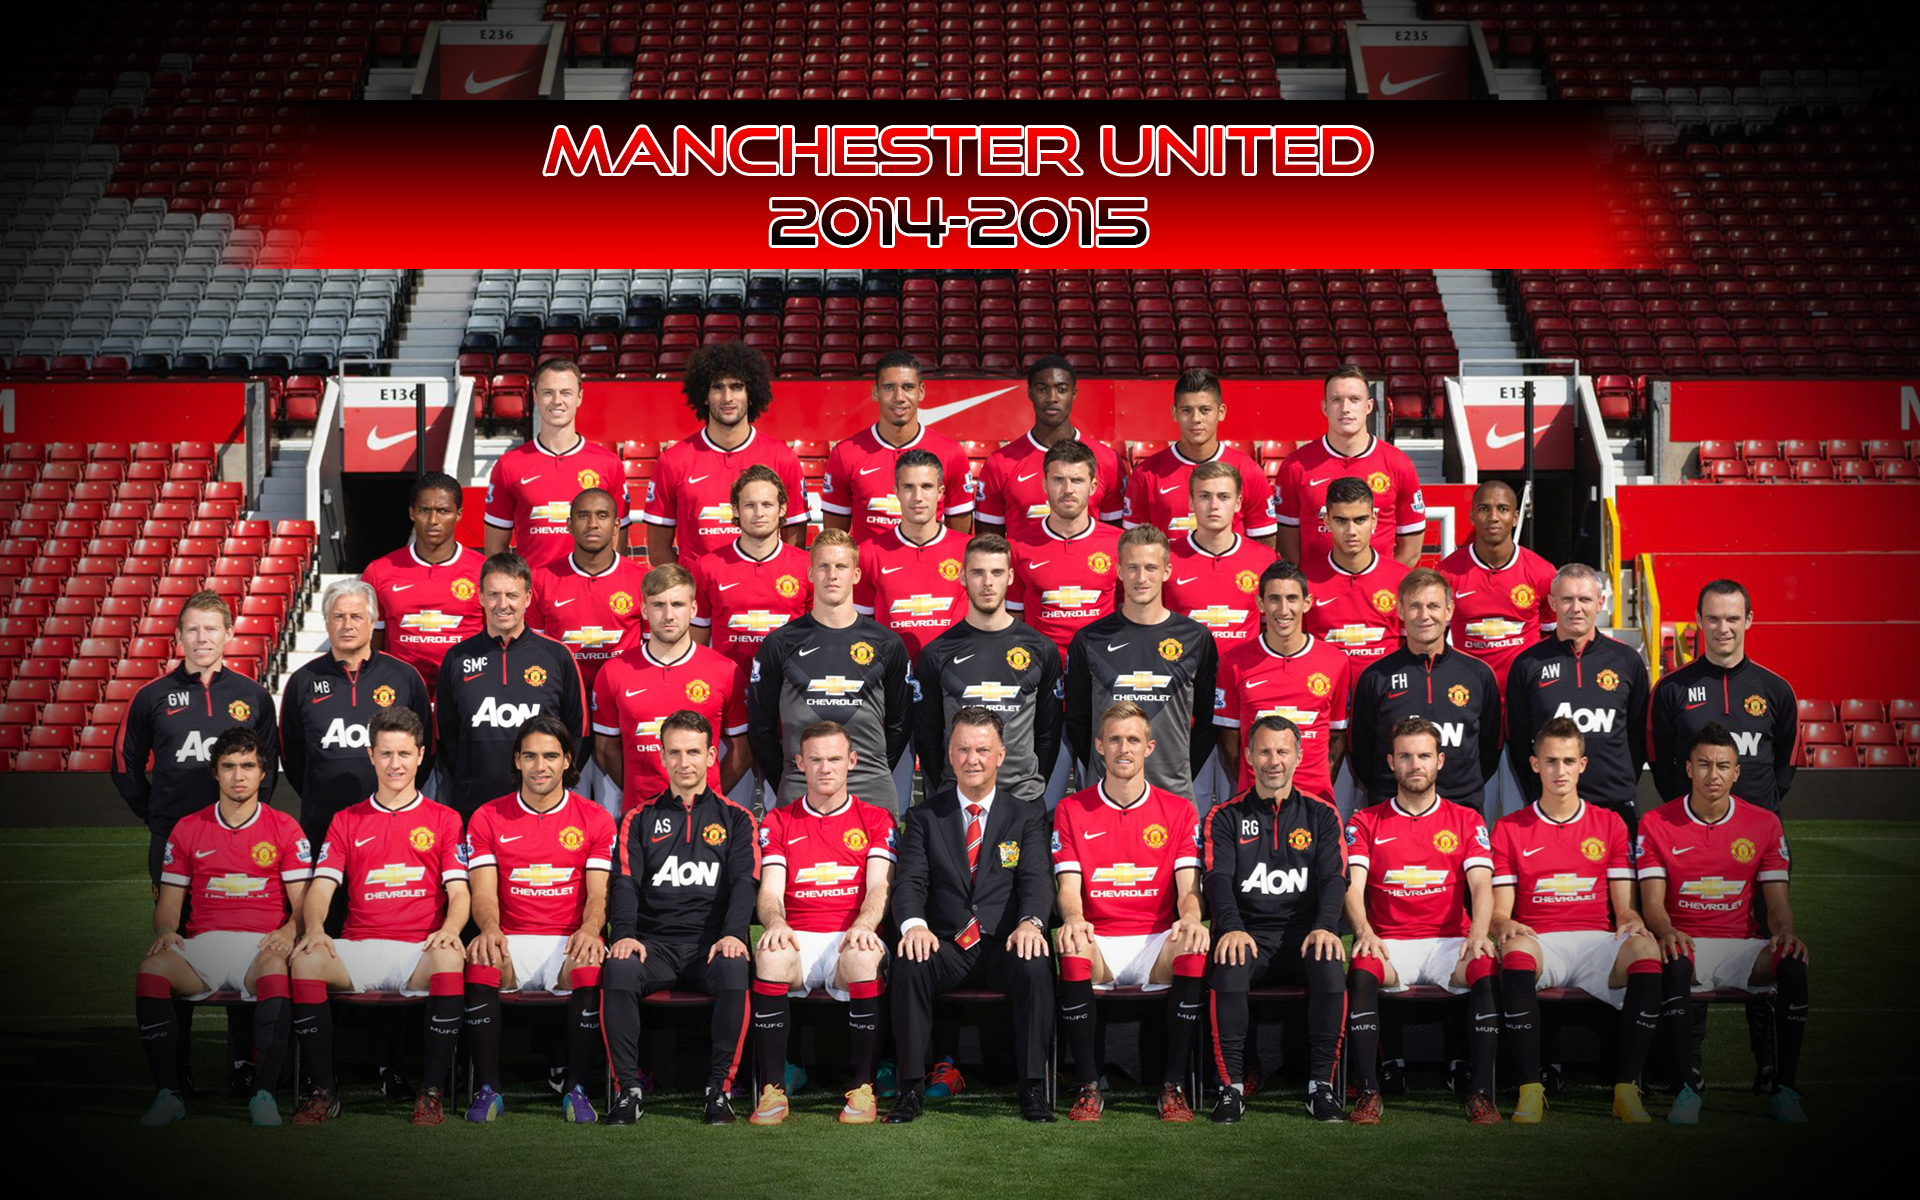 Manchester united wallpaper hd 2015 wallpapersafari for Home 2015 wallpaper hd